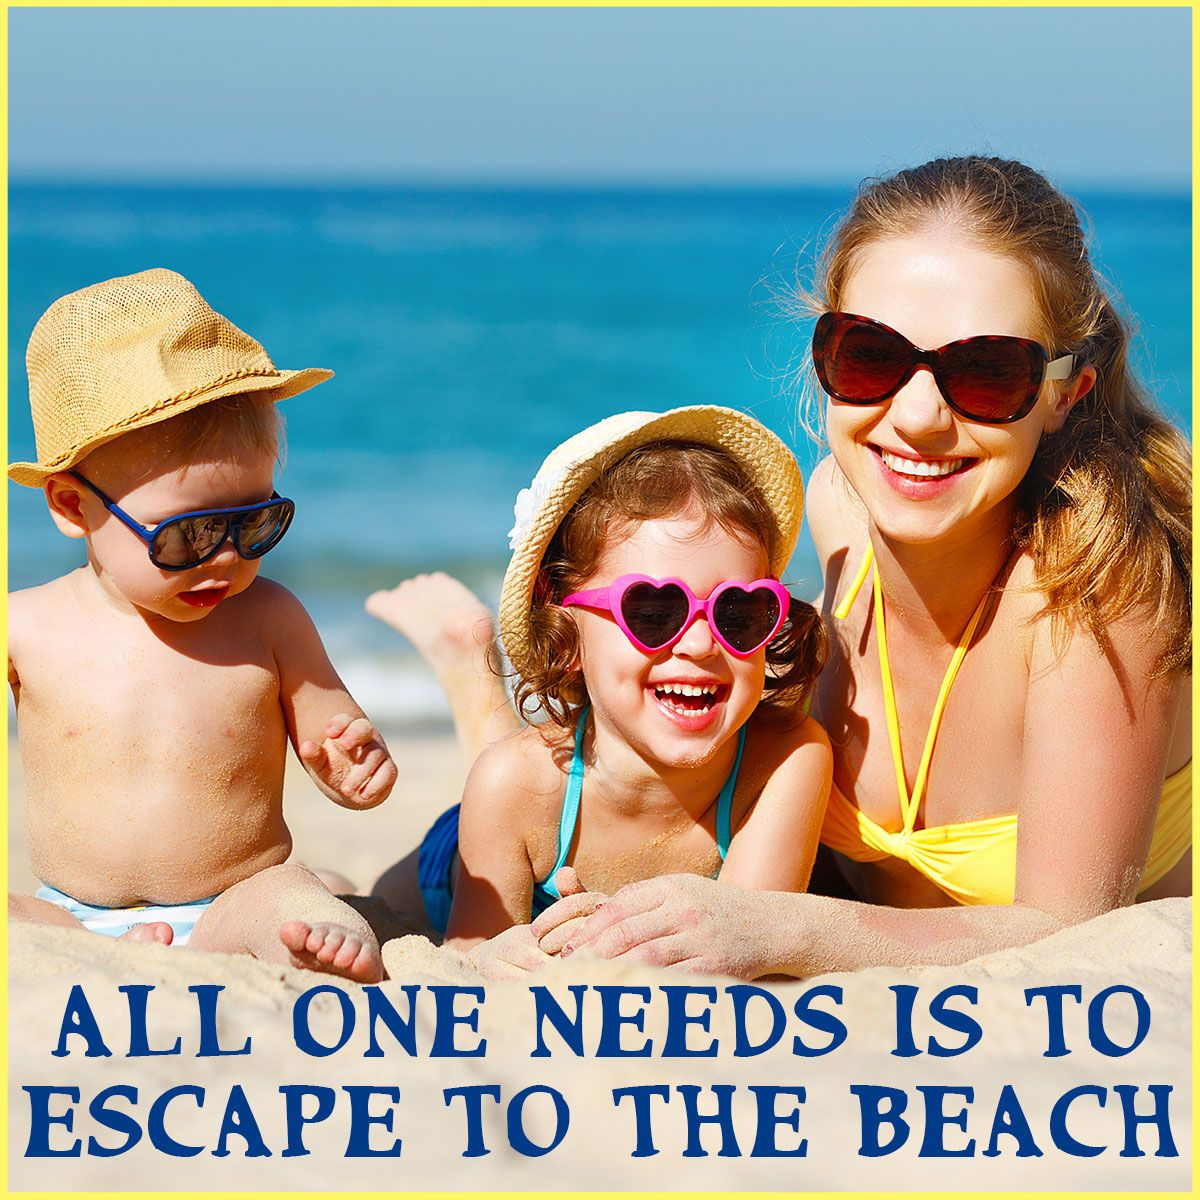 Are you ready to escape to topsail with images